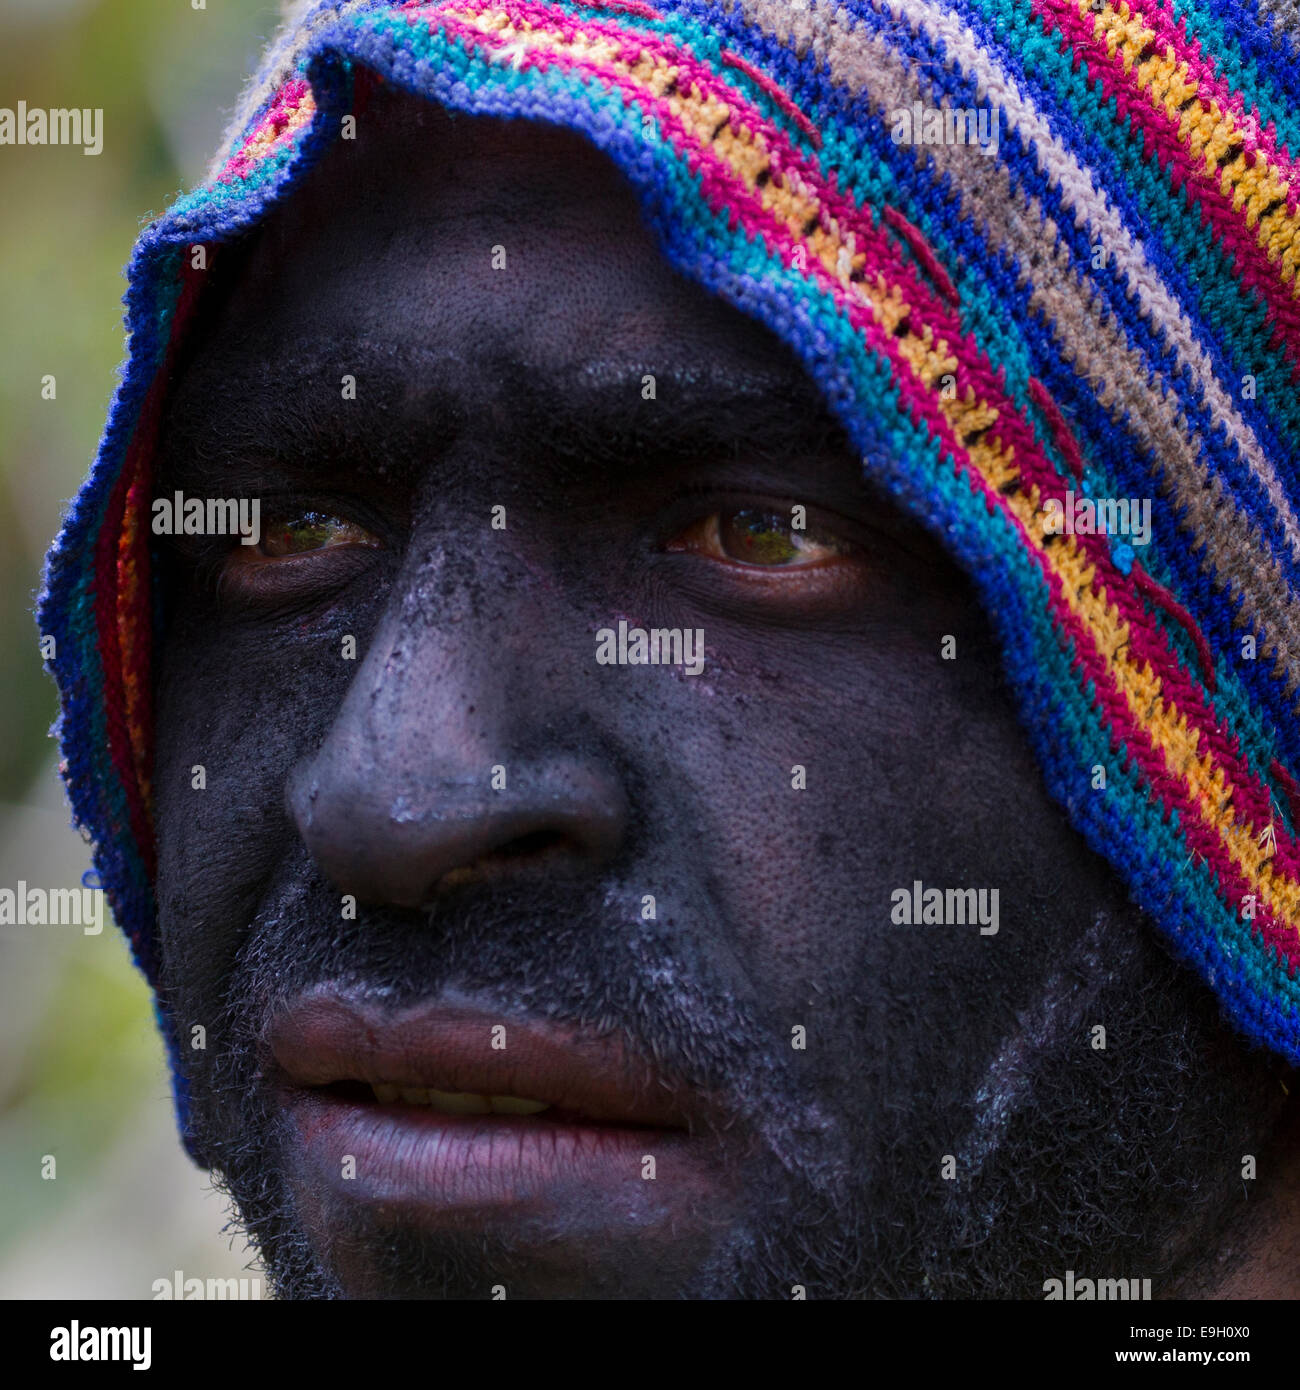 Bystander at Mt. Hagen Sing Sing with Ash-covered Face - Stock Image